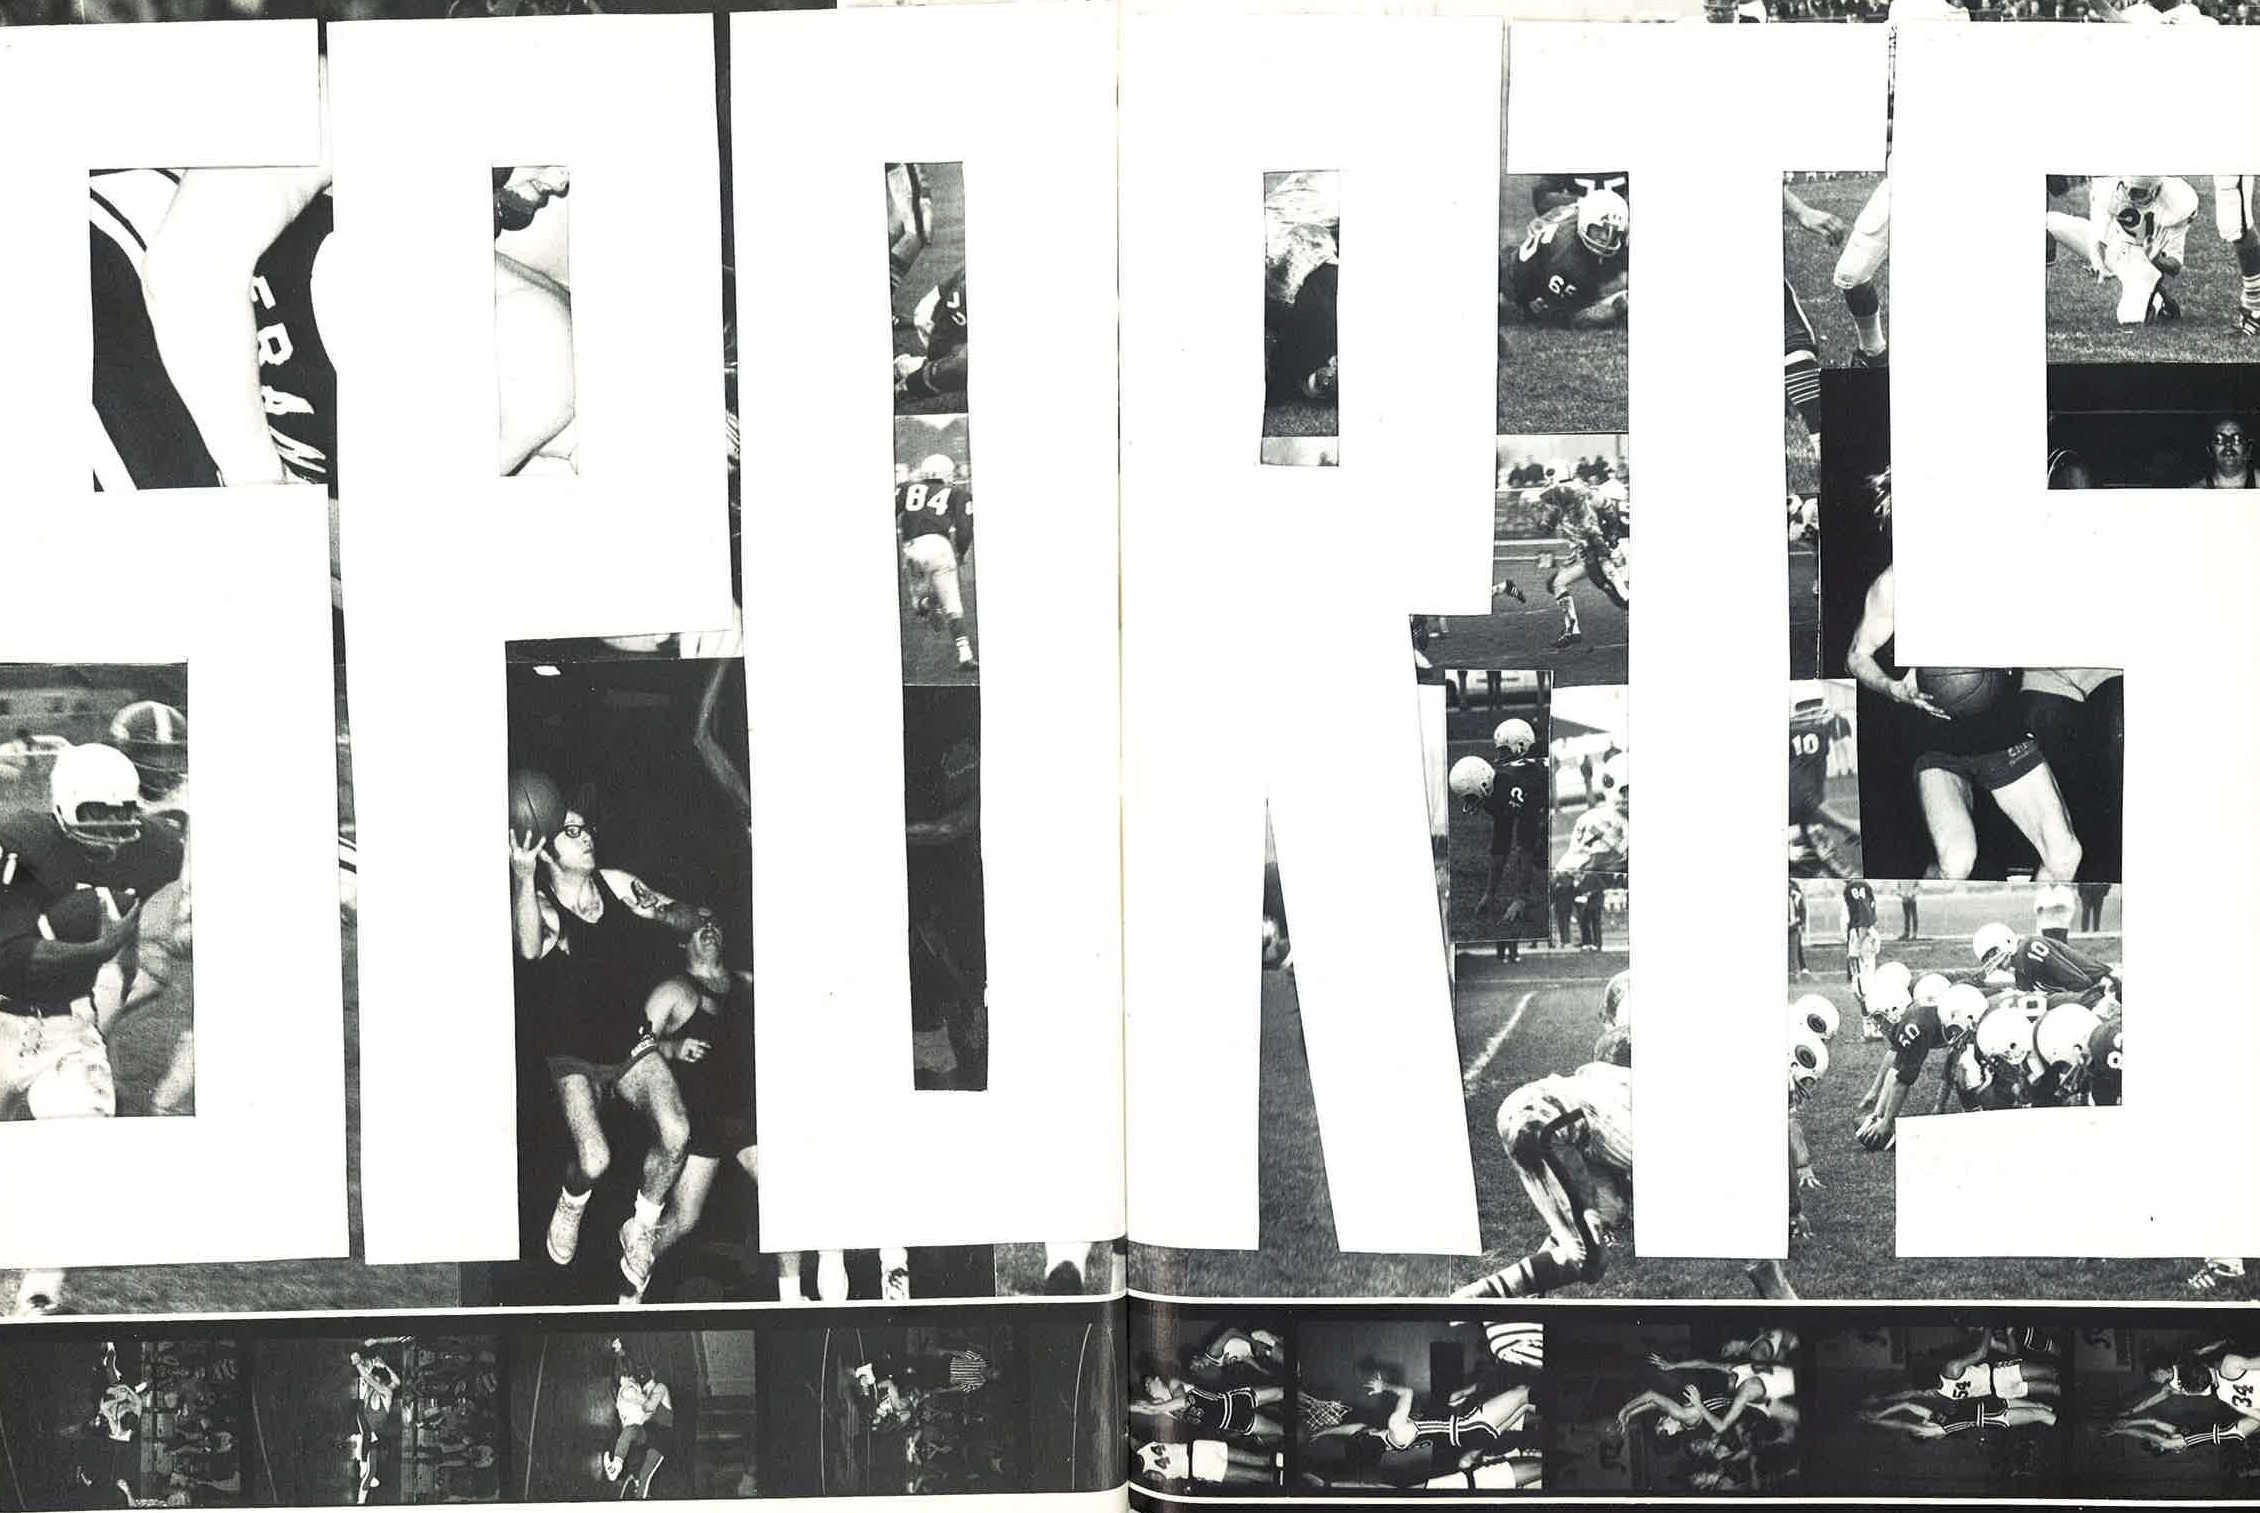 1972_Yearbook_48-49.jpg